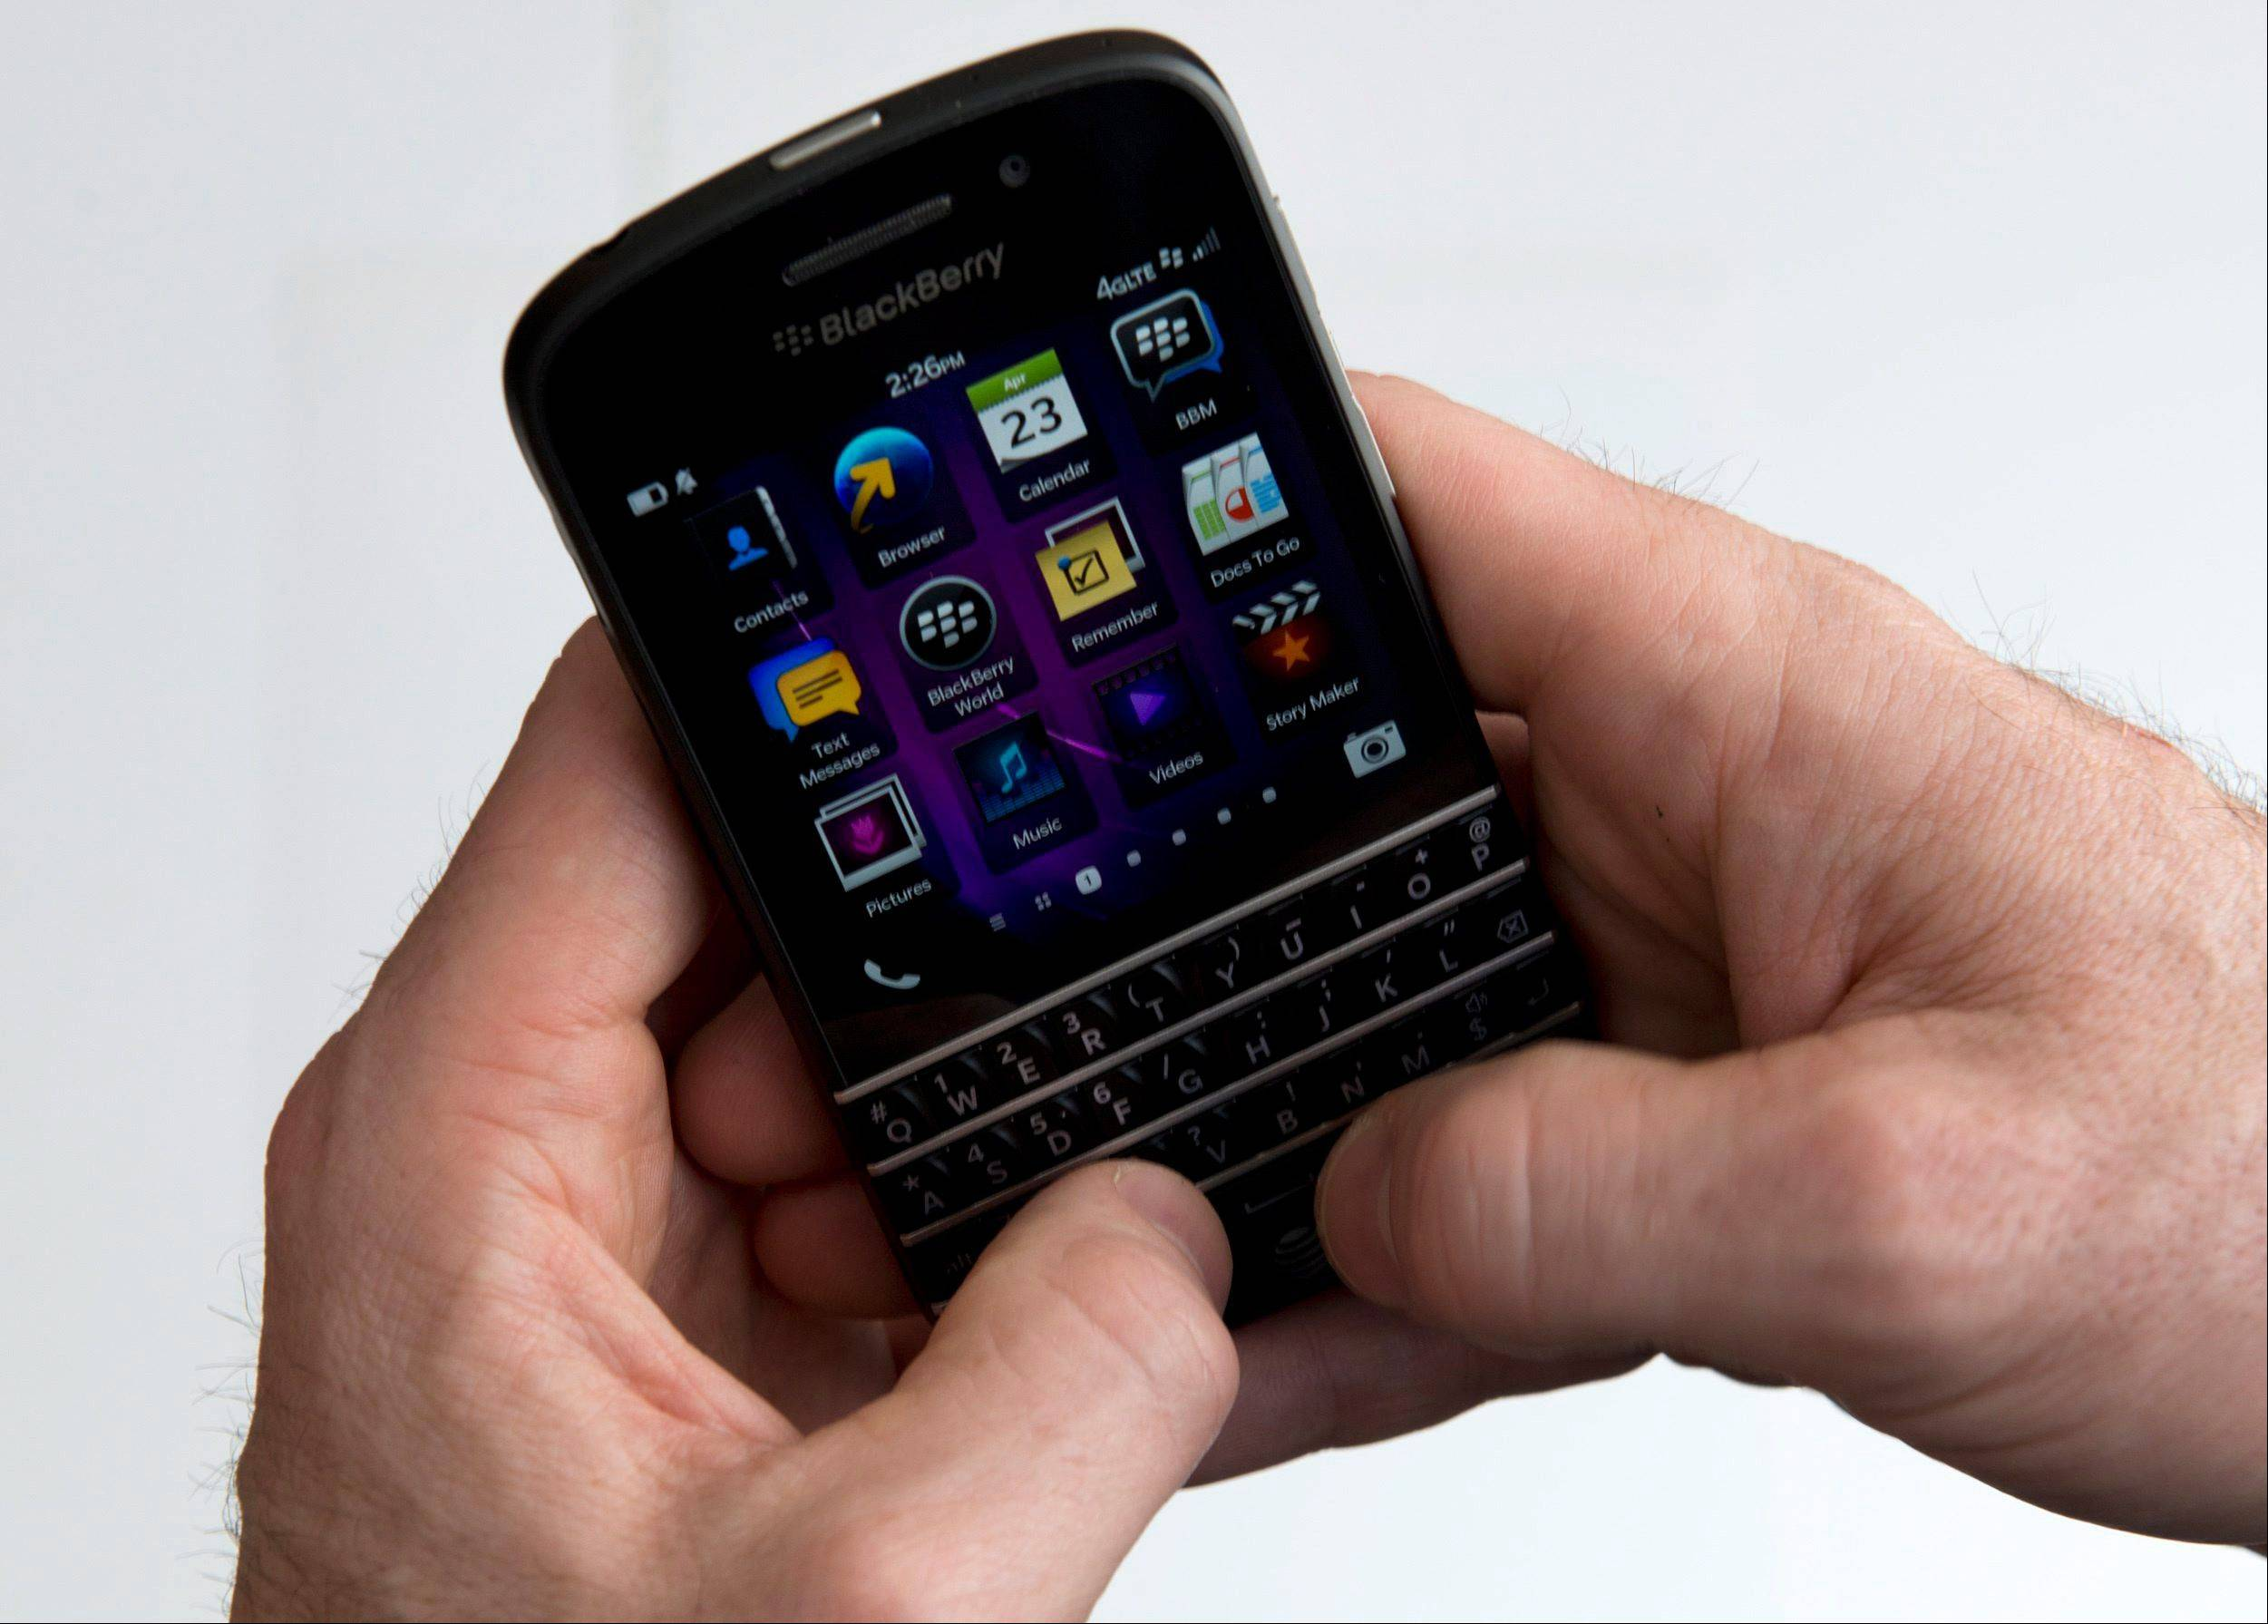 BlackBerry on Friday, Dec. 20, 2013 reported a massive $4.4 billion loss in the third quarter and 56 percent drop in revenue. The results are the BlackBerry's first under new chairman and interim chief executive John Chen.